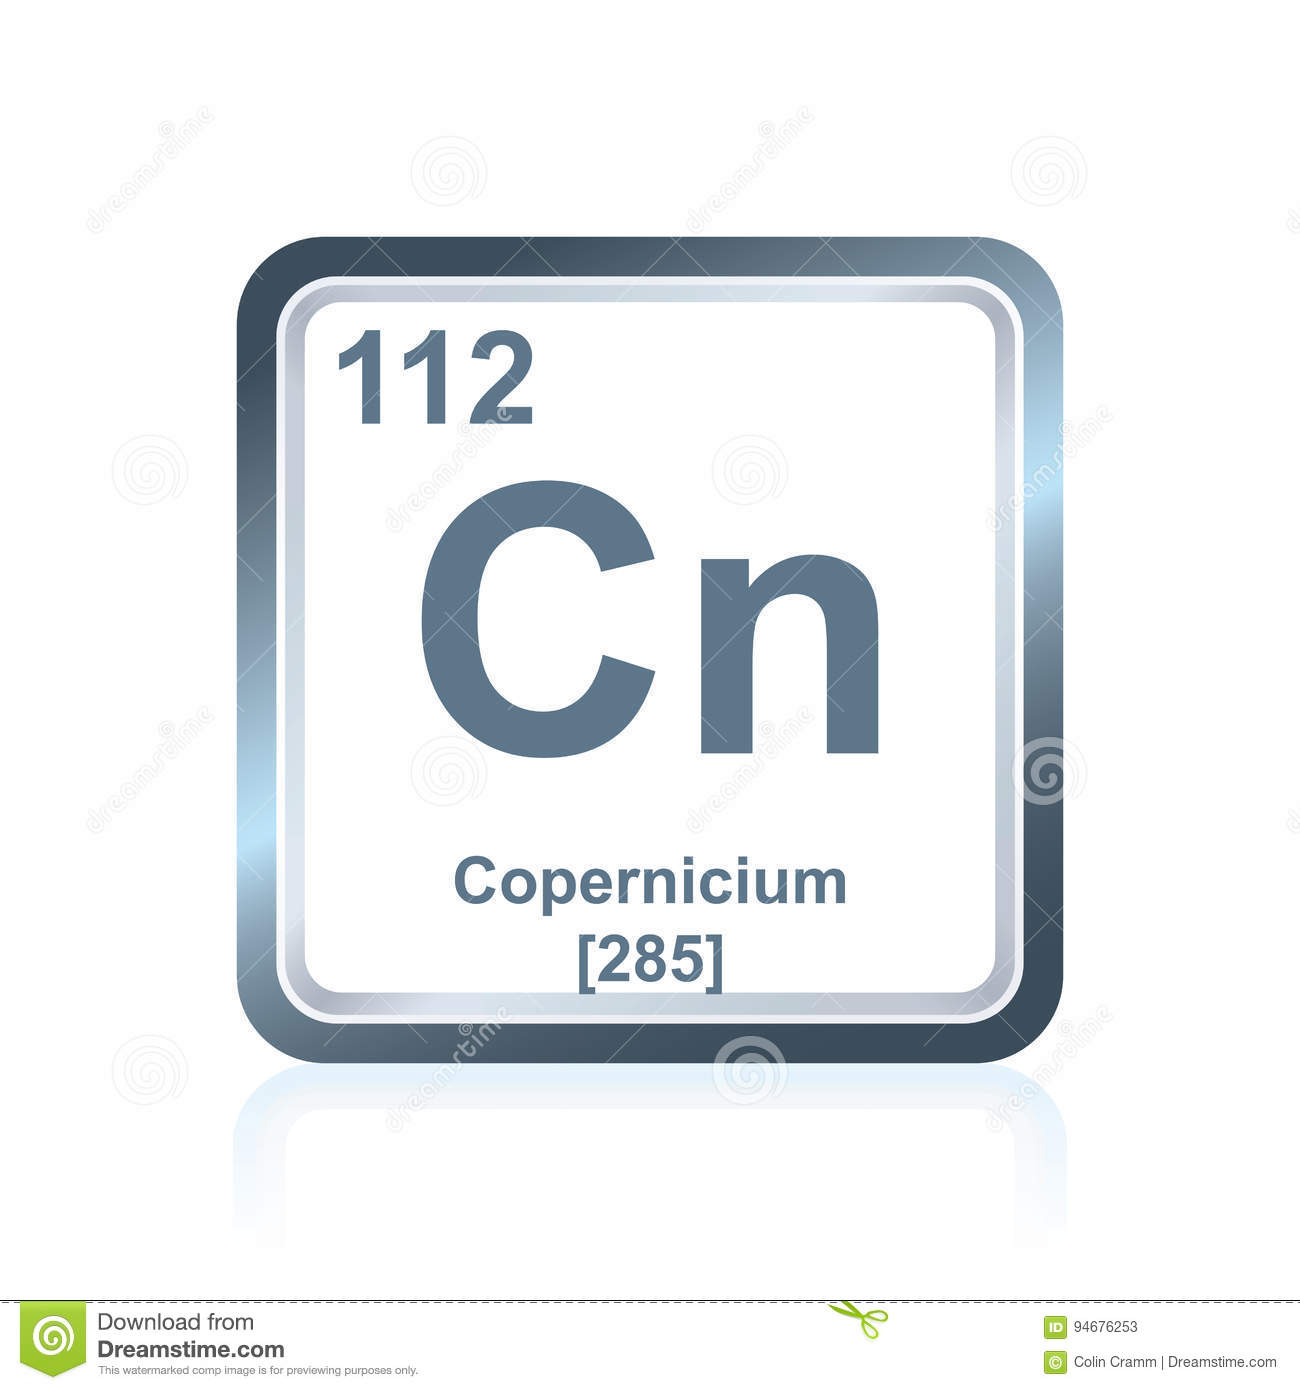 Chemical element copernicium from the periodic table stock royalty free illustration download chemical element copernicium from the periodic table gamestrikefo Image collections